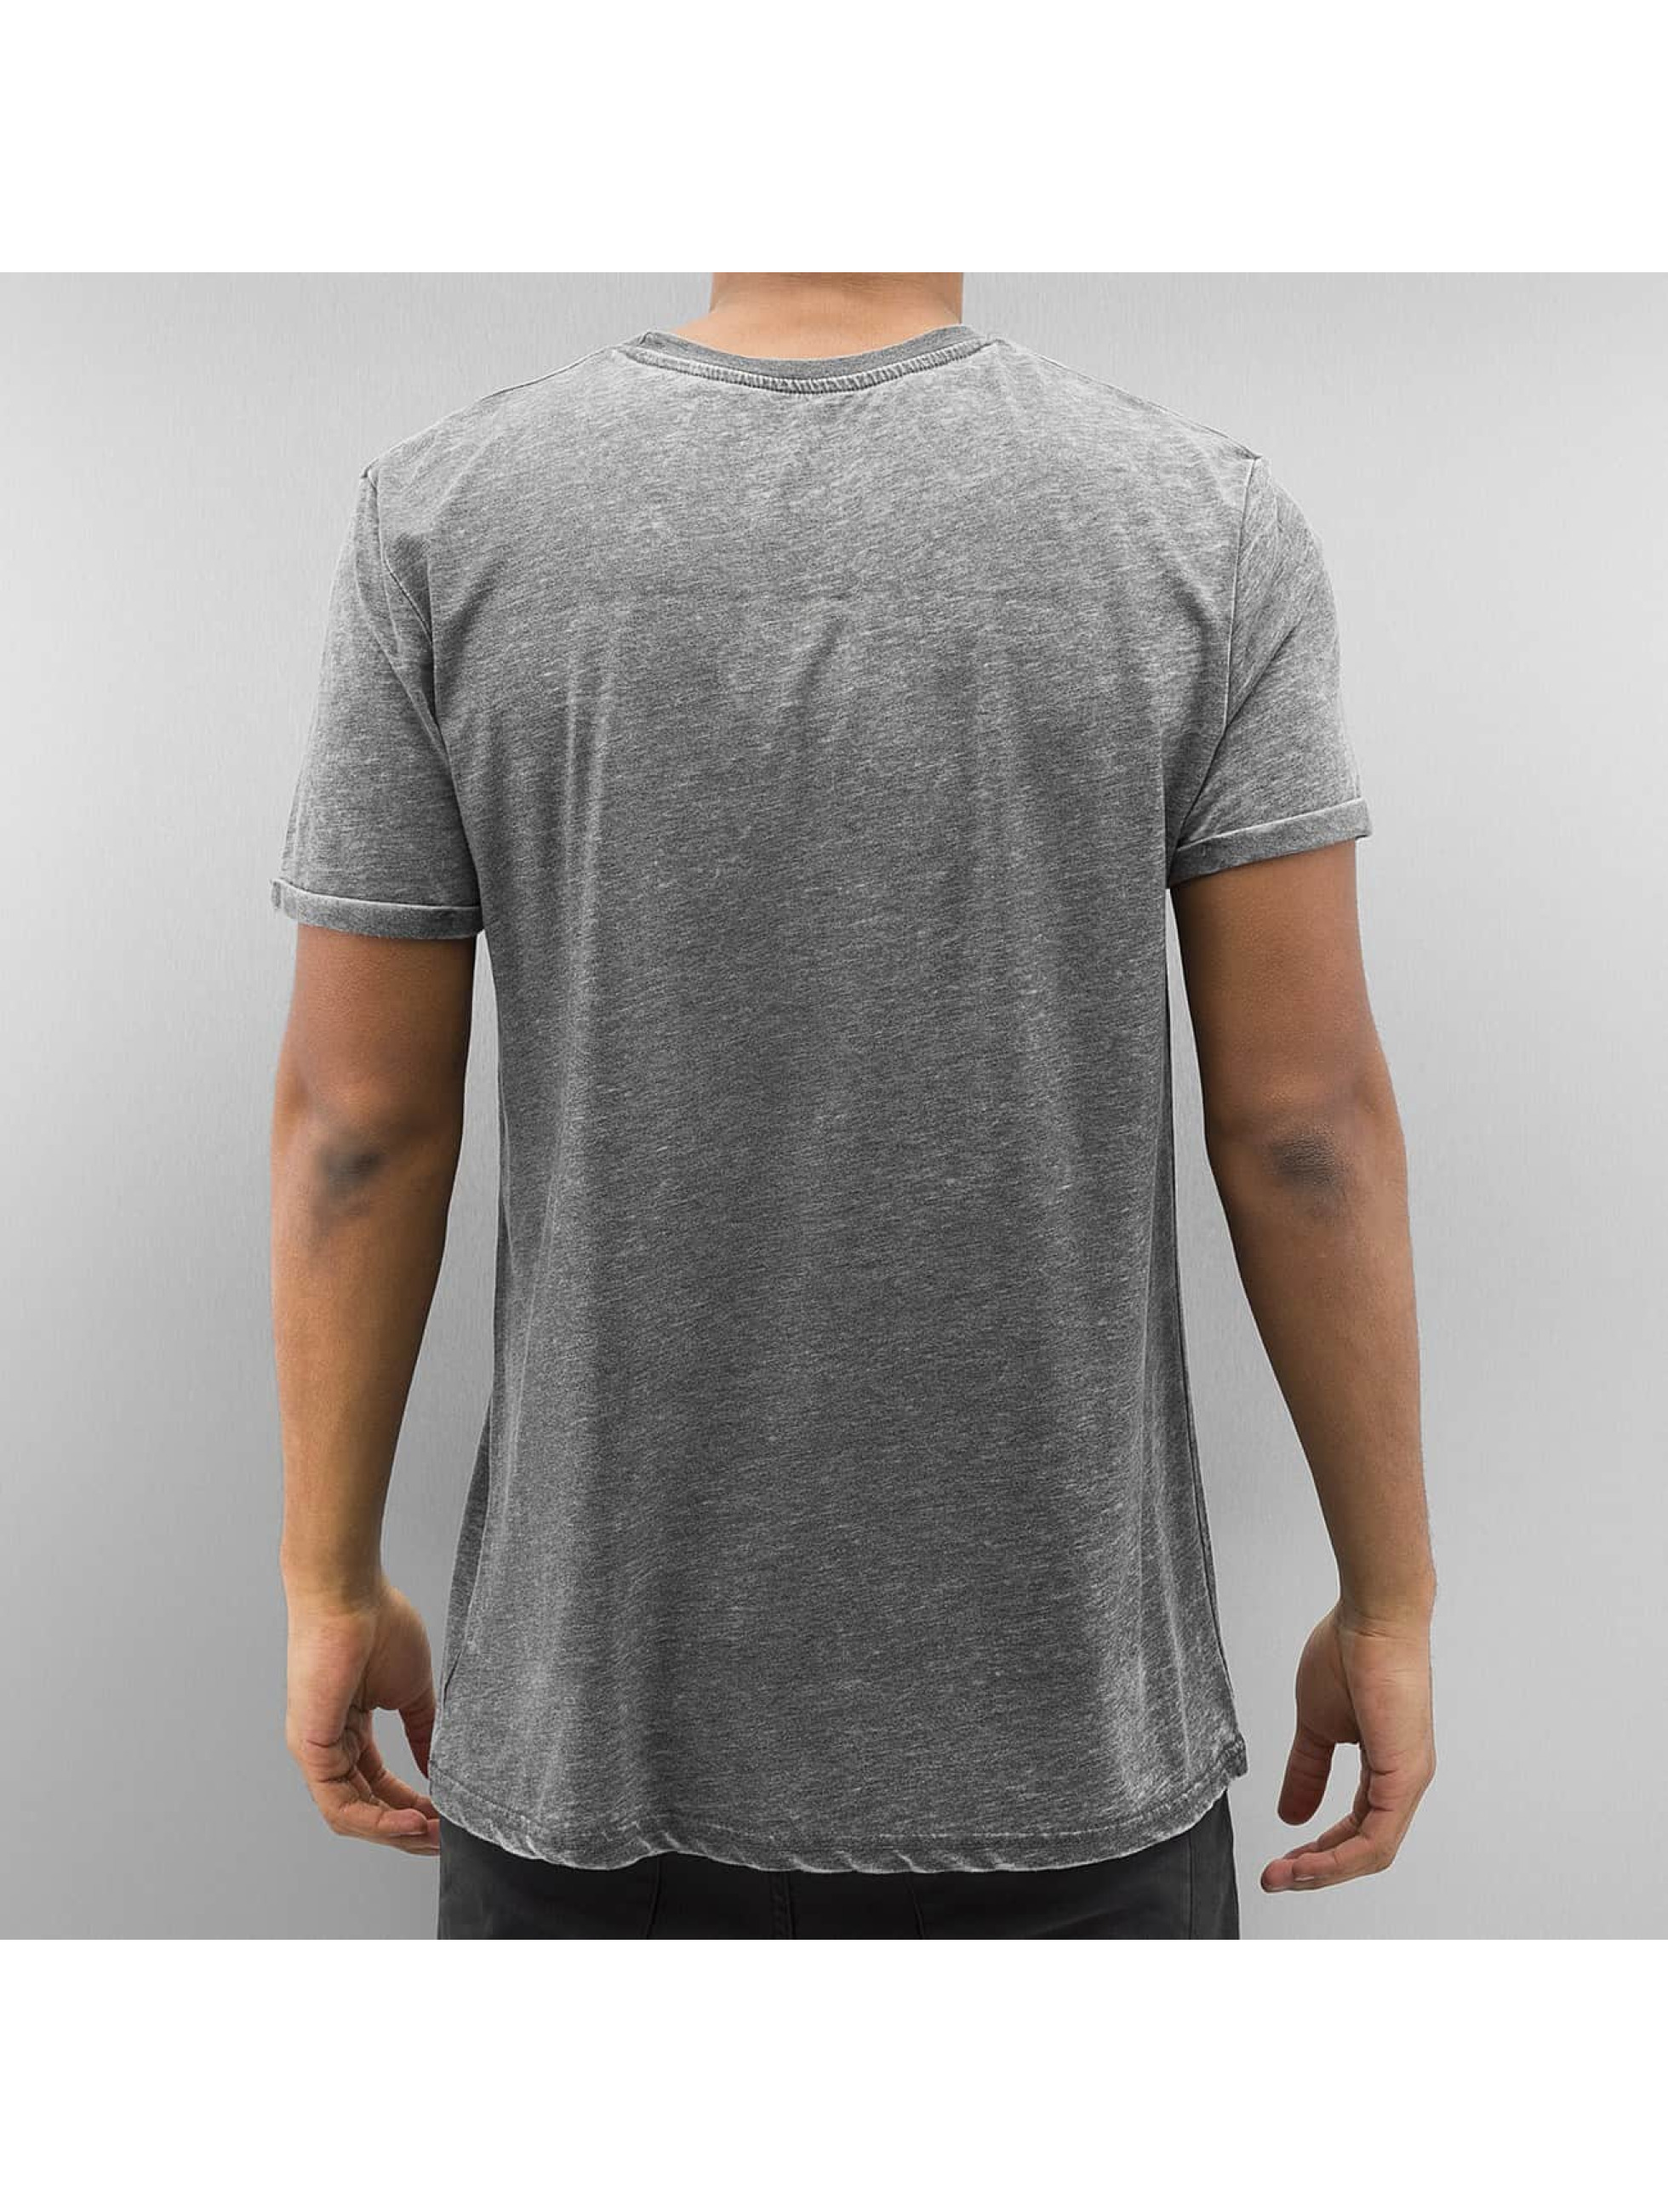 Monkey Business T-Shirt Limited Edition gray